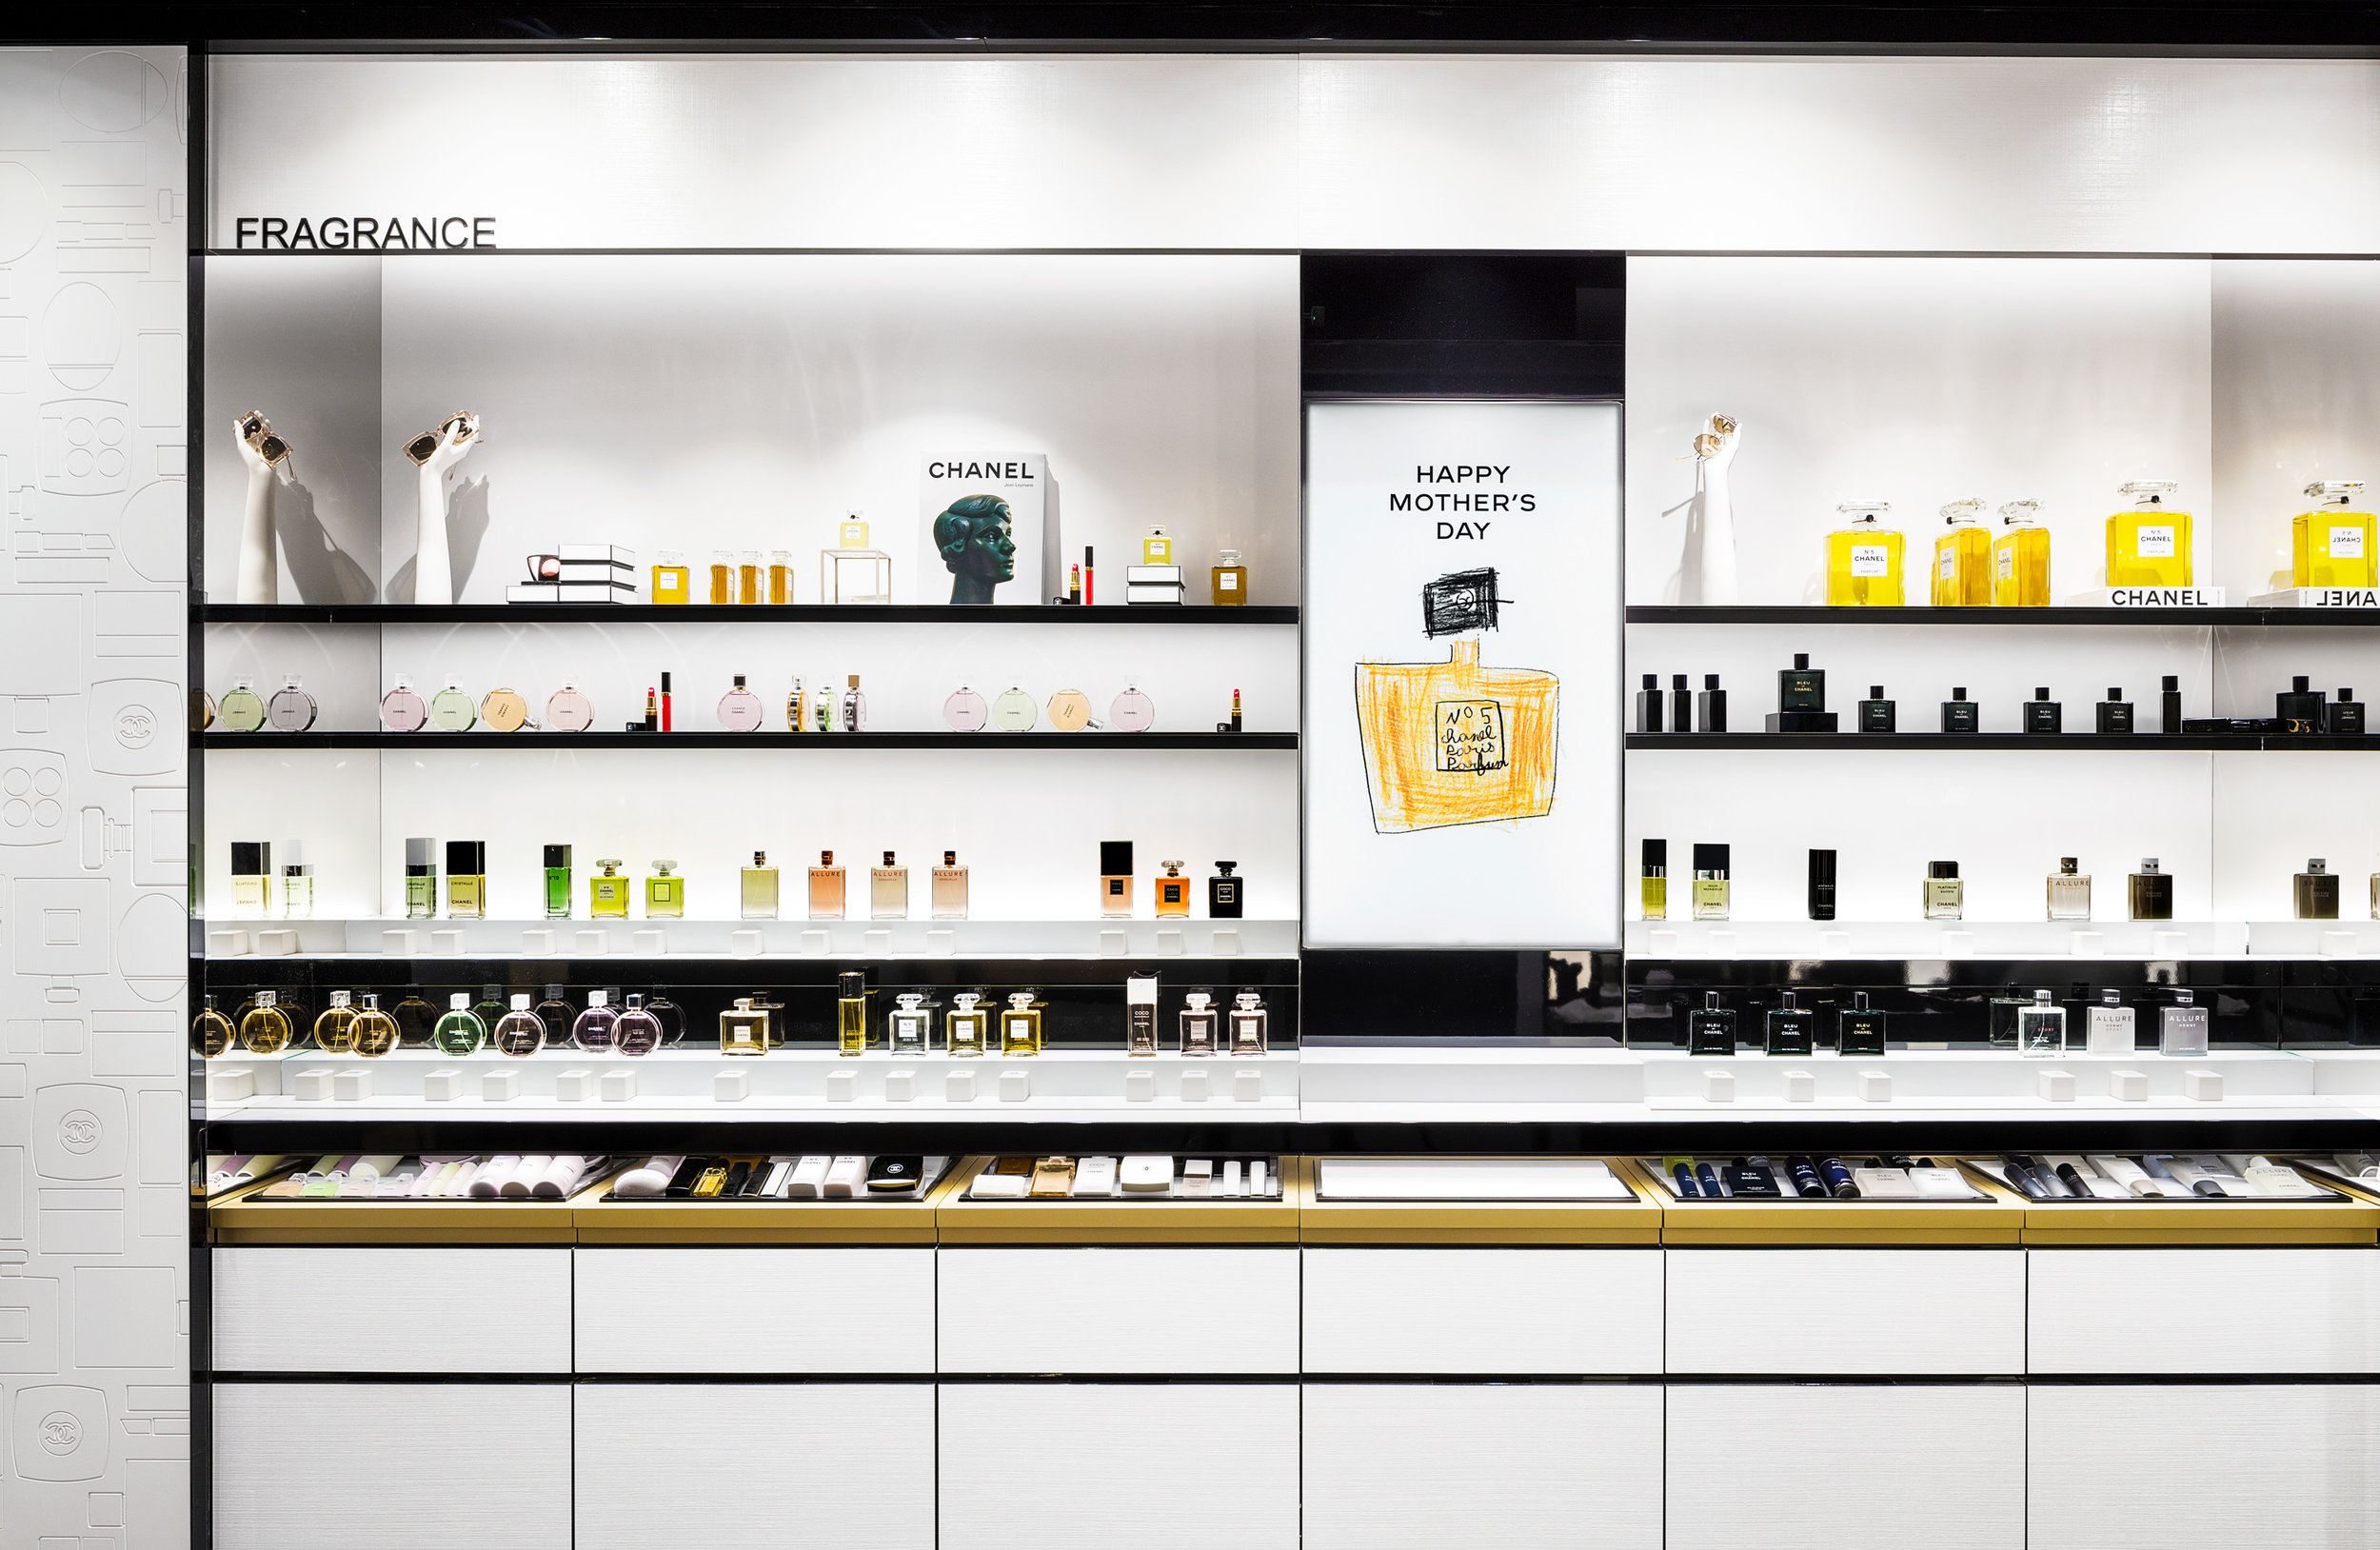 'Fragrance Library' in the new Toronto Chanel fragrance and Beauty Boutique. Photo: Chanel